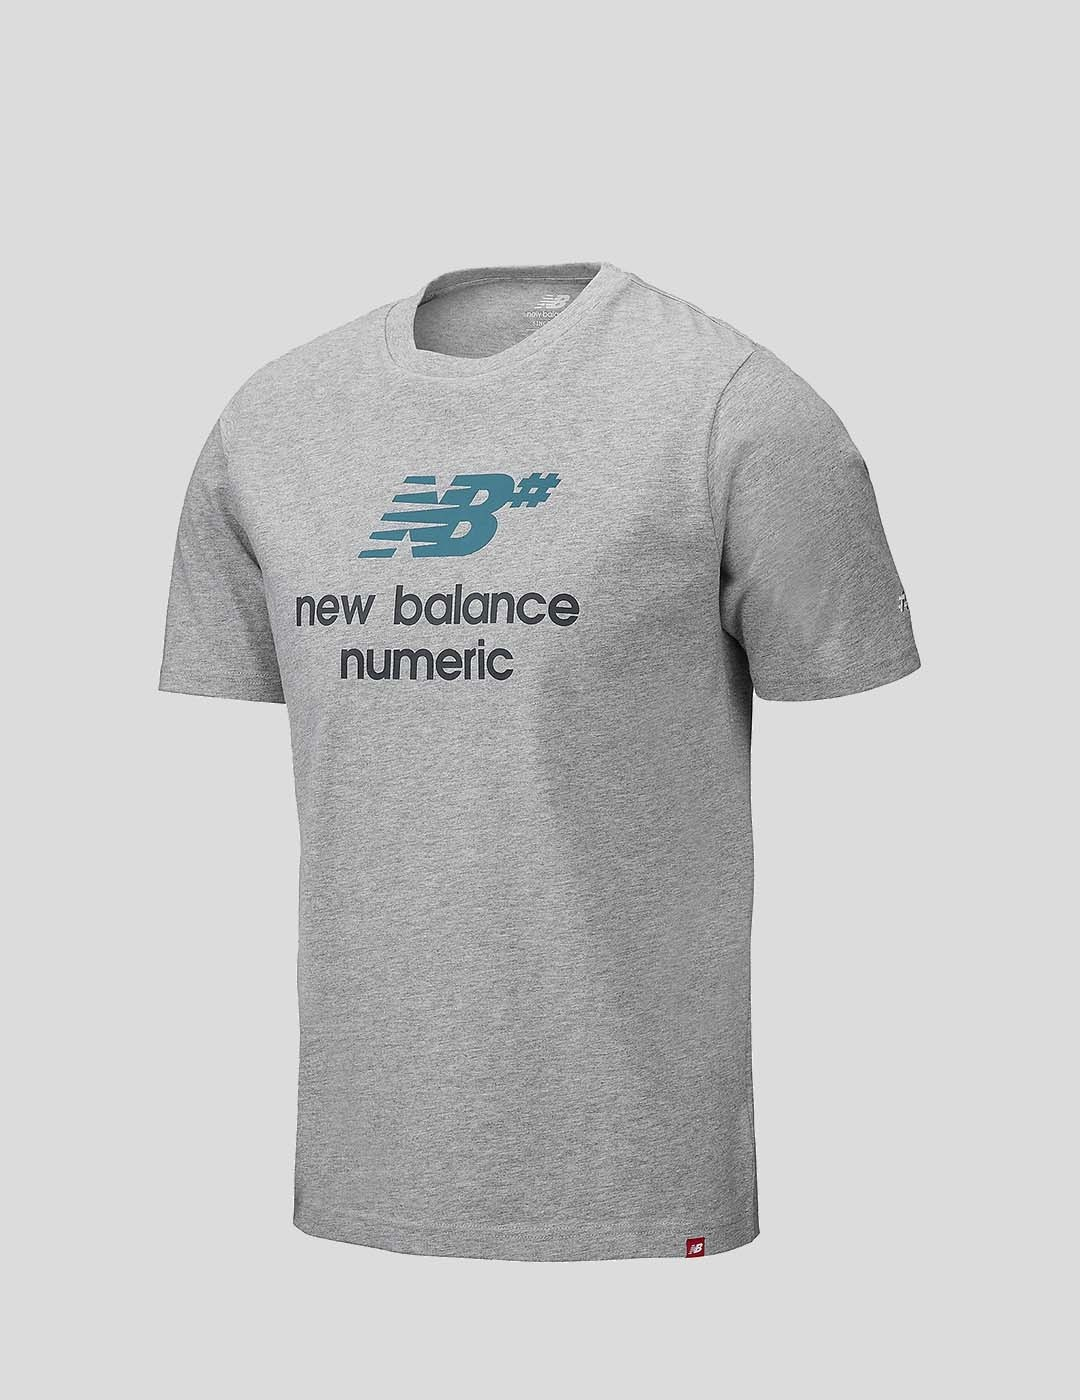 CAMISETA NEW BALANCE NUMERIC LOGO STACKED ATHLETIC GREY WITH MULTI COLOR